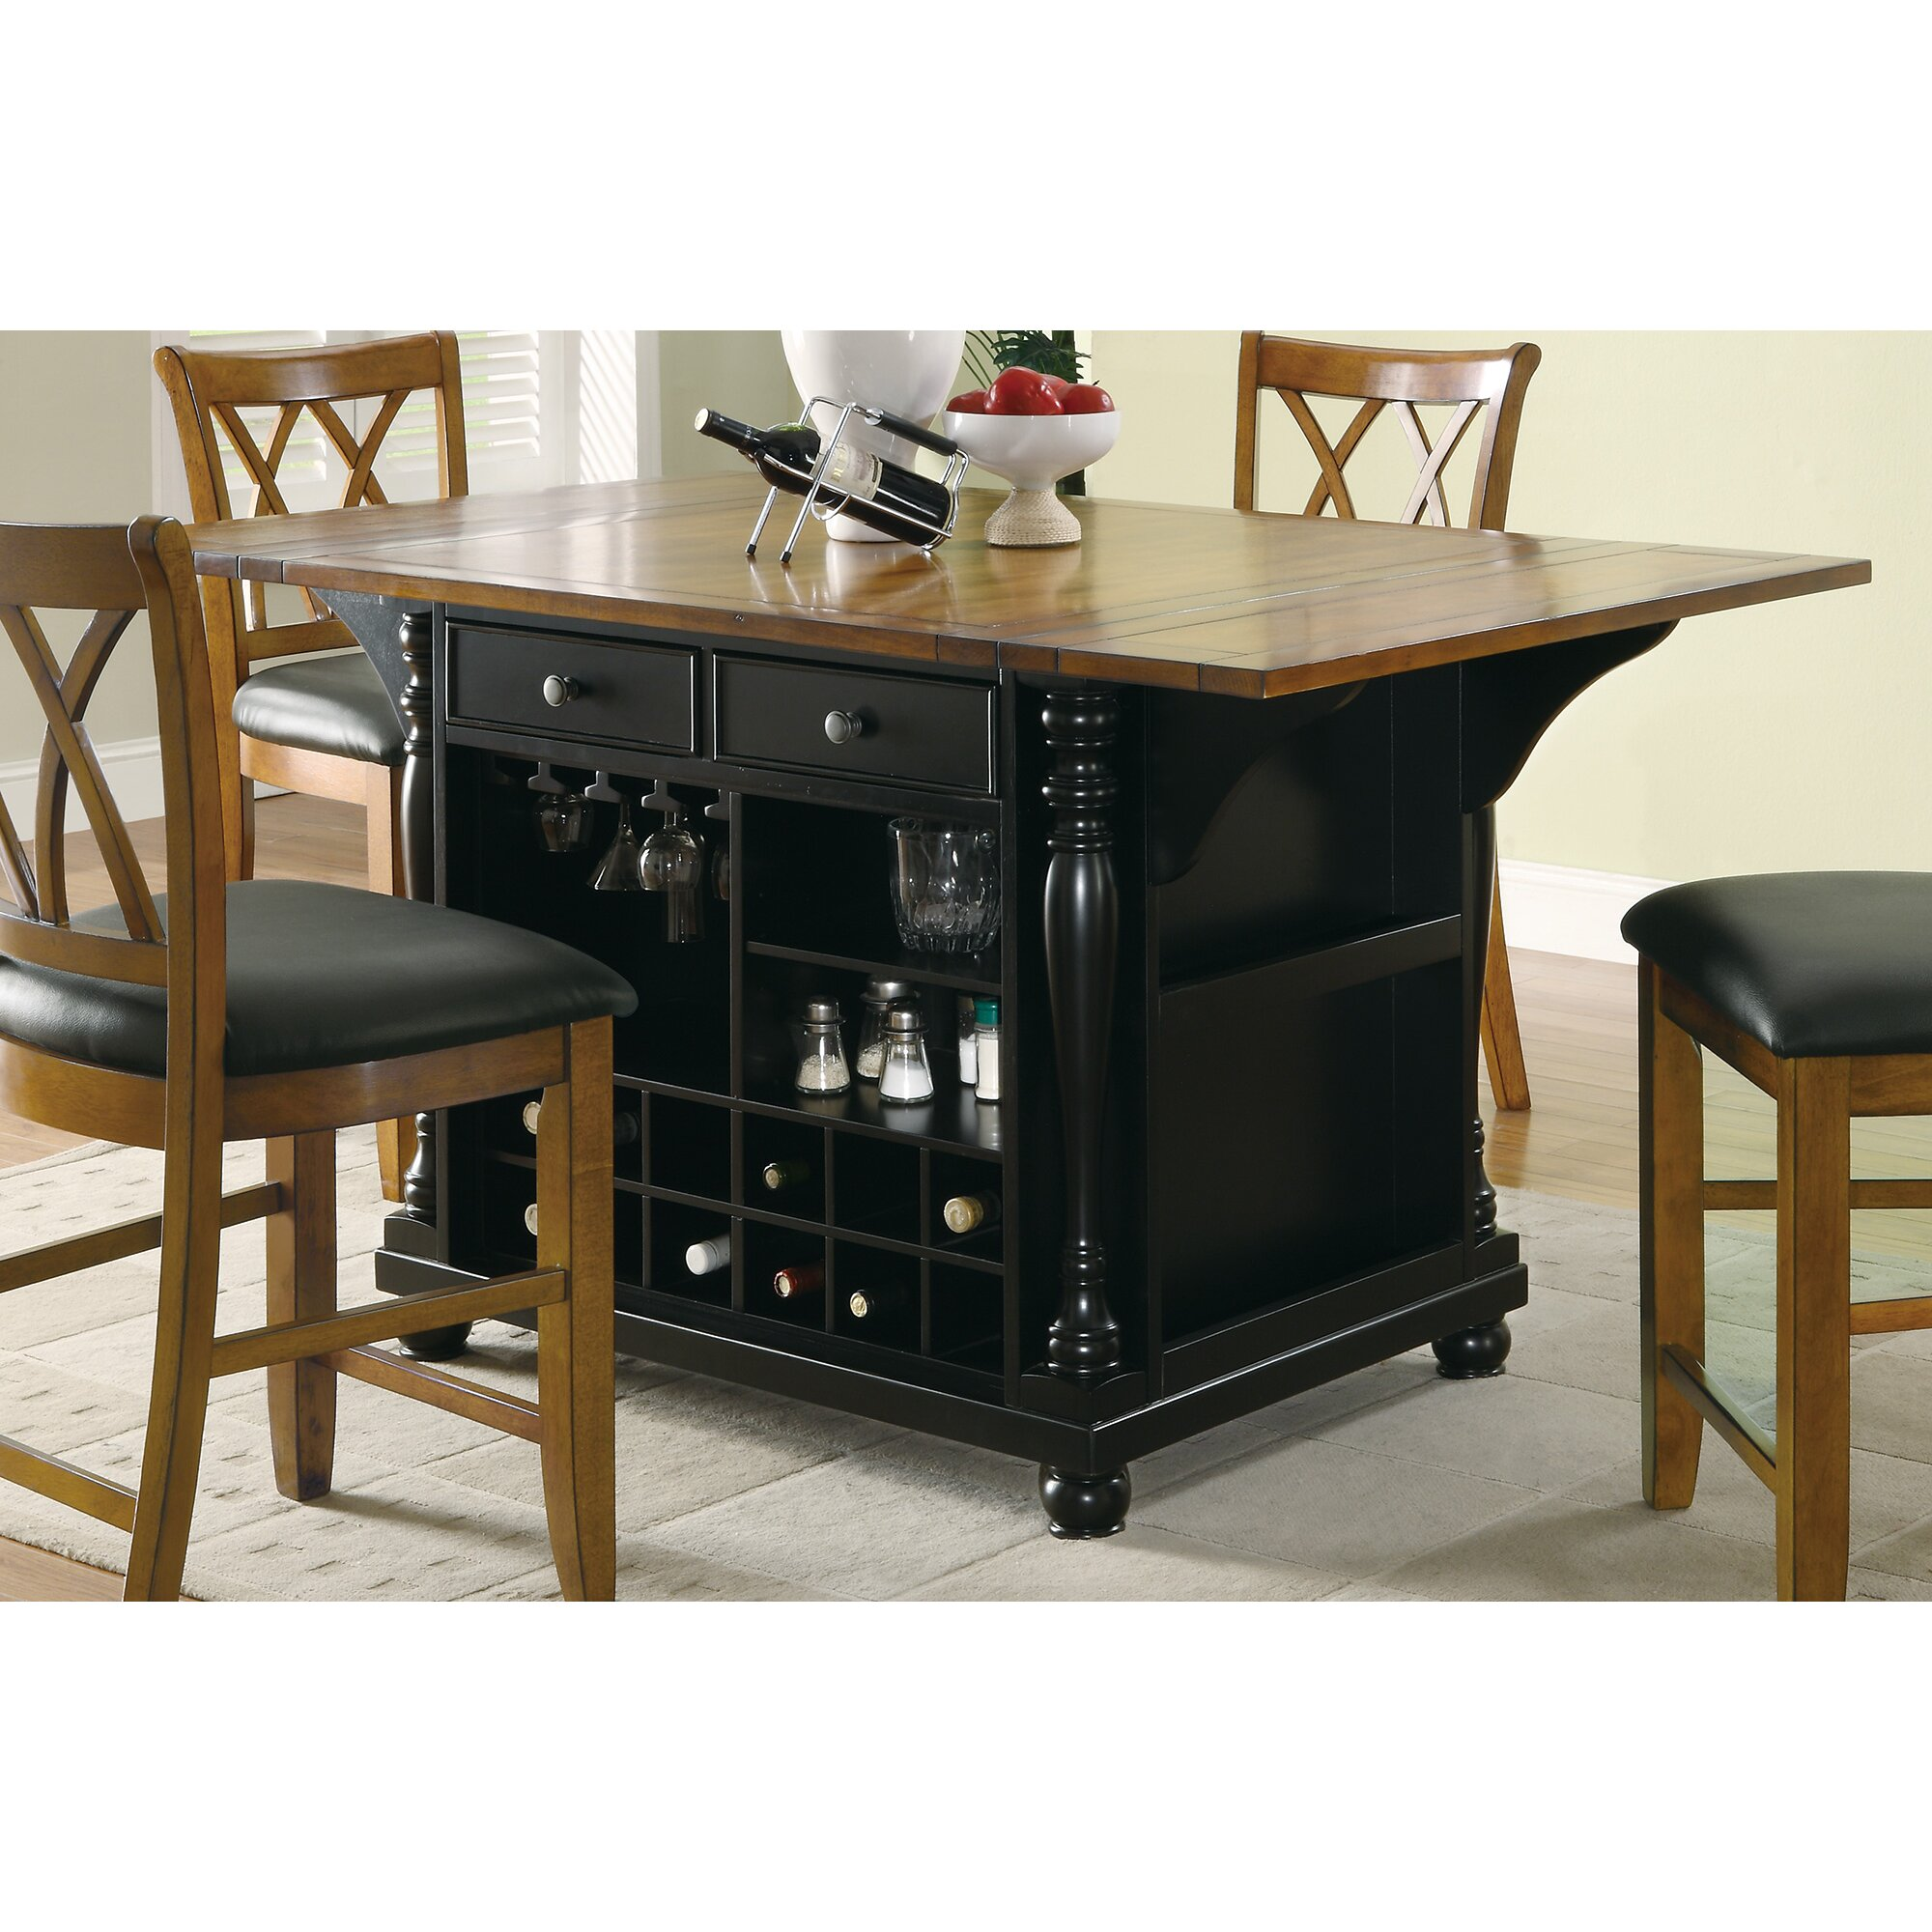 Kitchen Island Furniture: Wildon Home ® Kitchen Island & Reviews